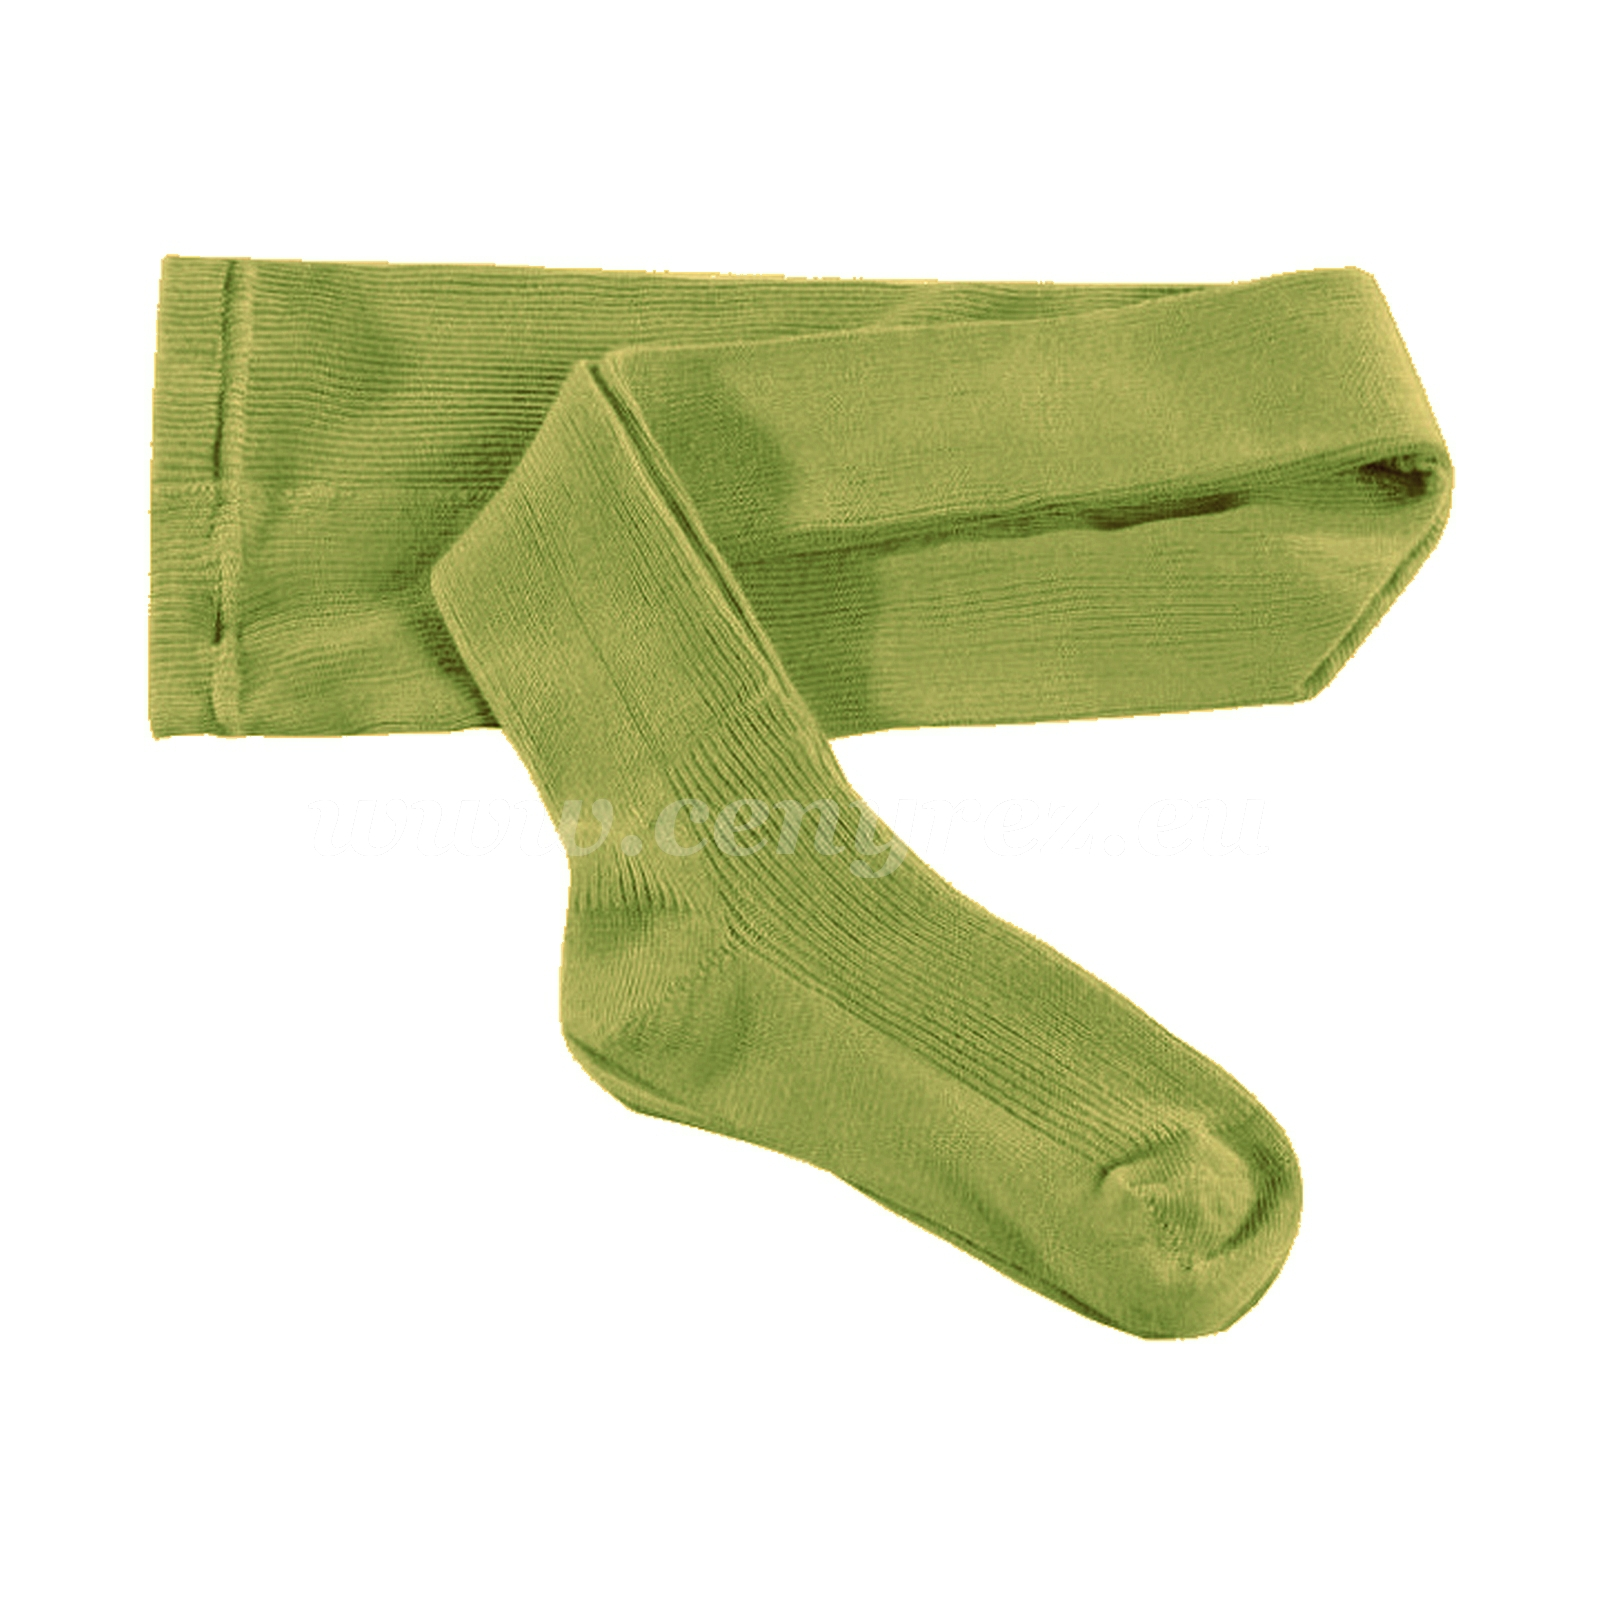 KASKA Children's ribbed tights - light green